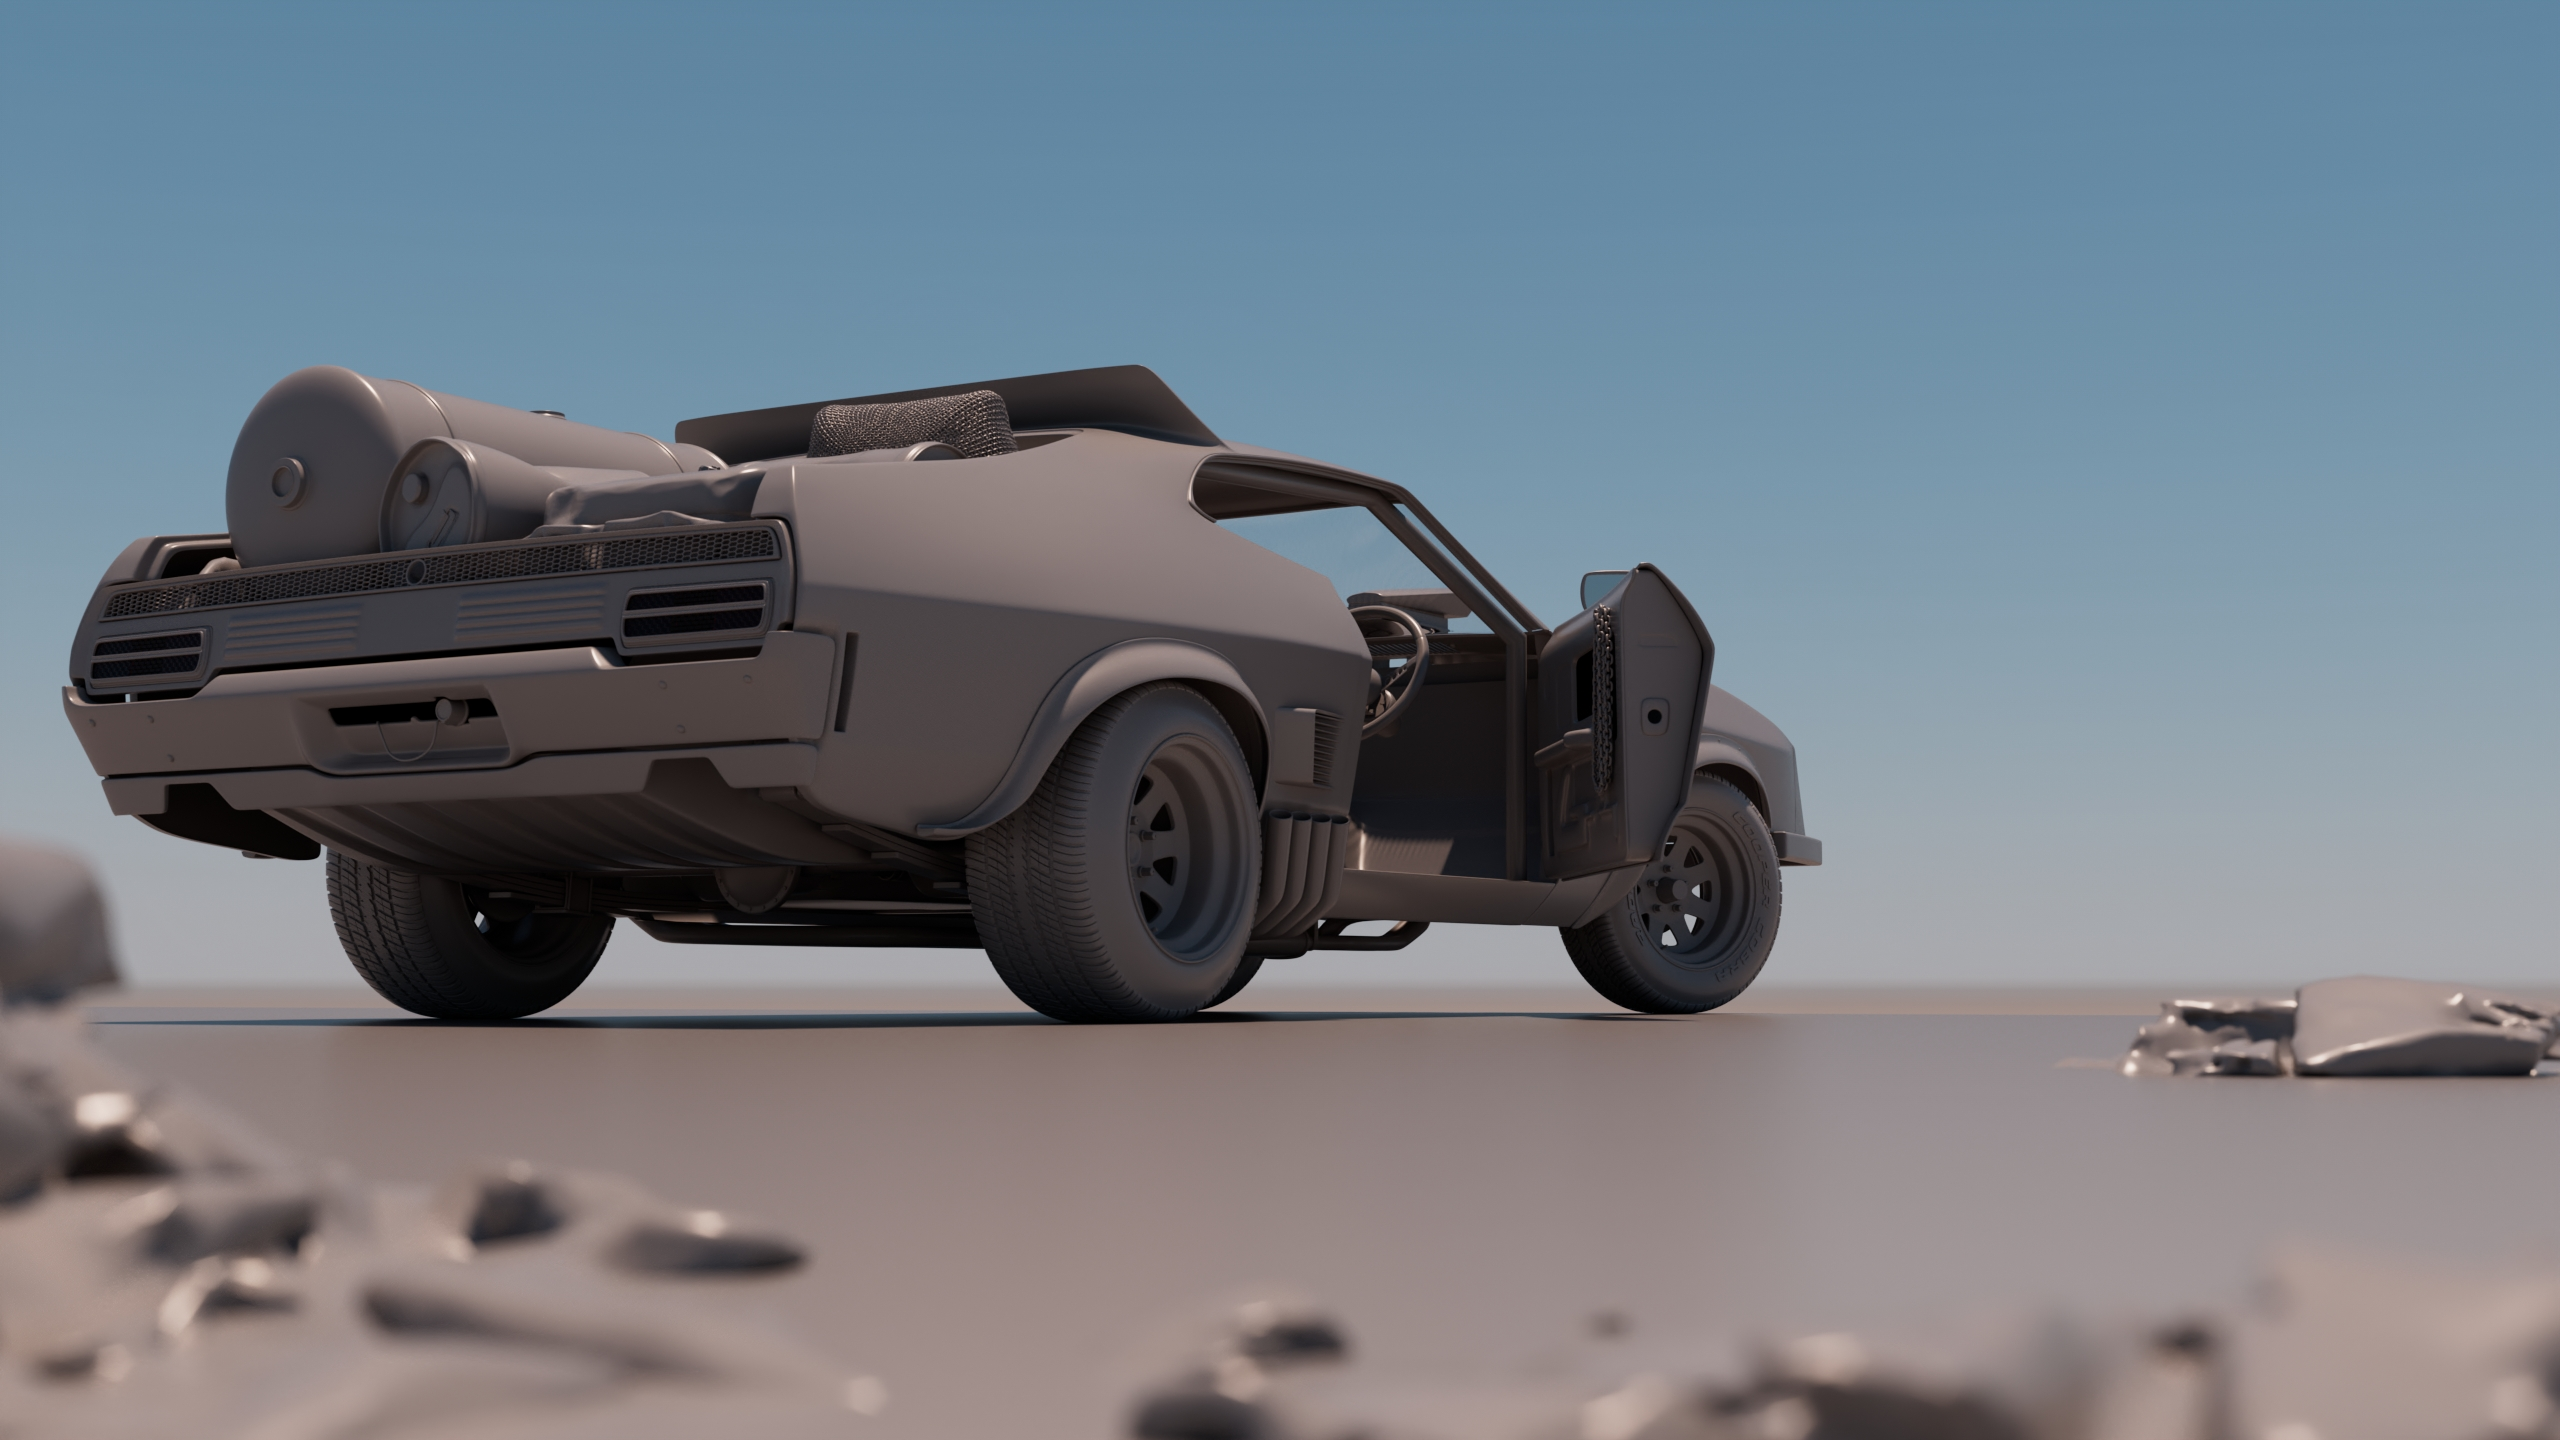 Interceptor Mad Max Fury Road - Car Render Challenge 2020